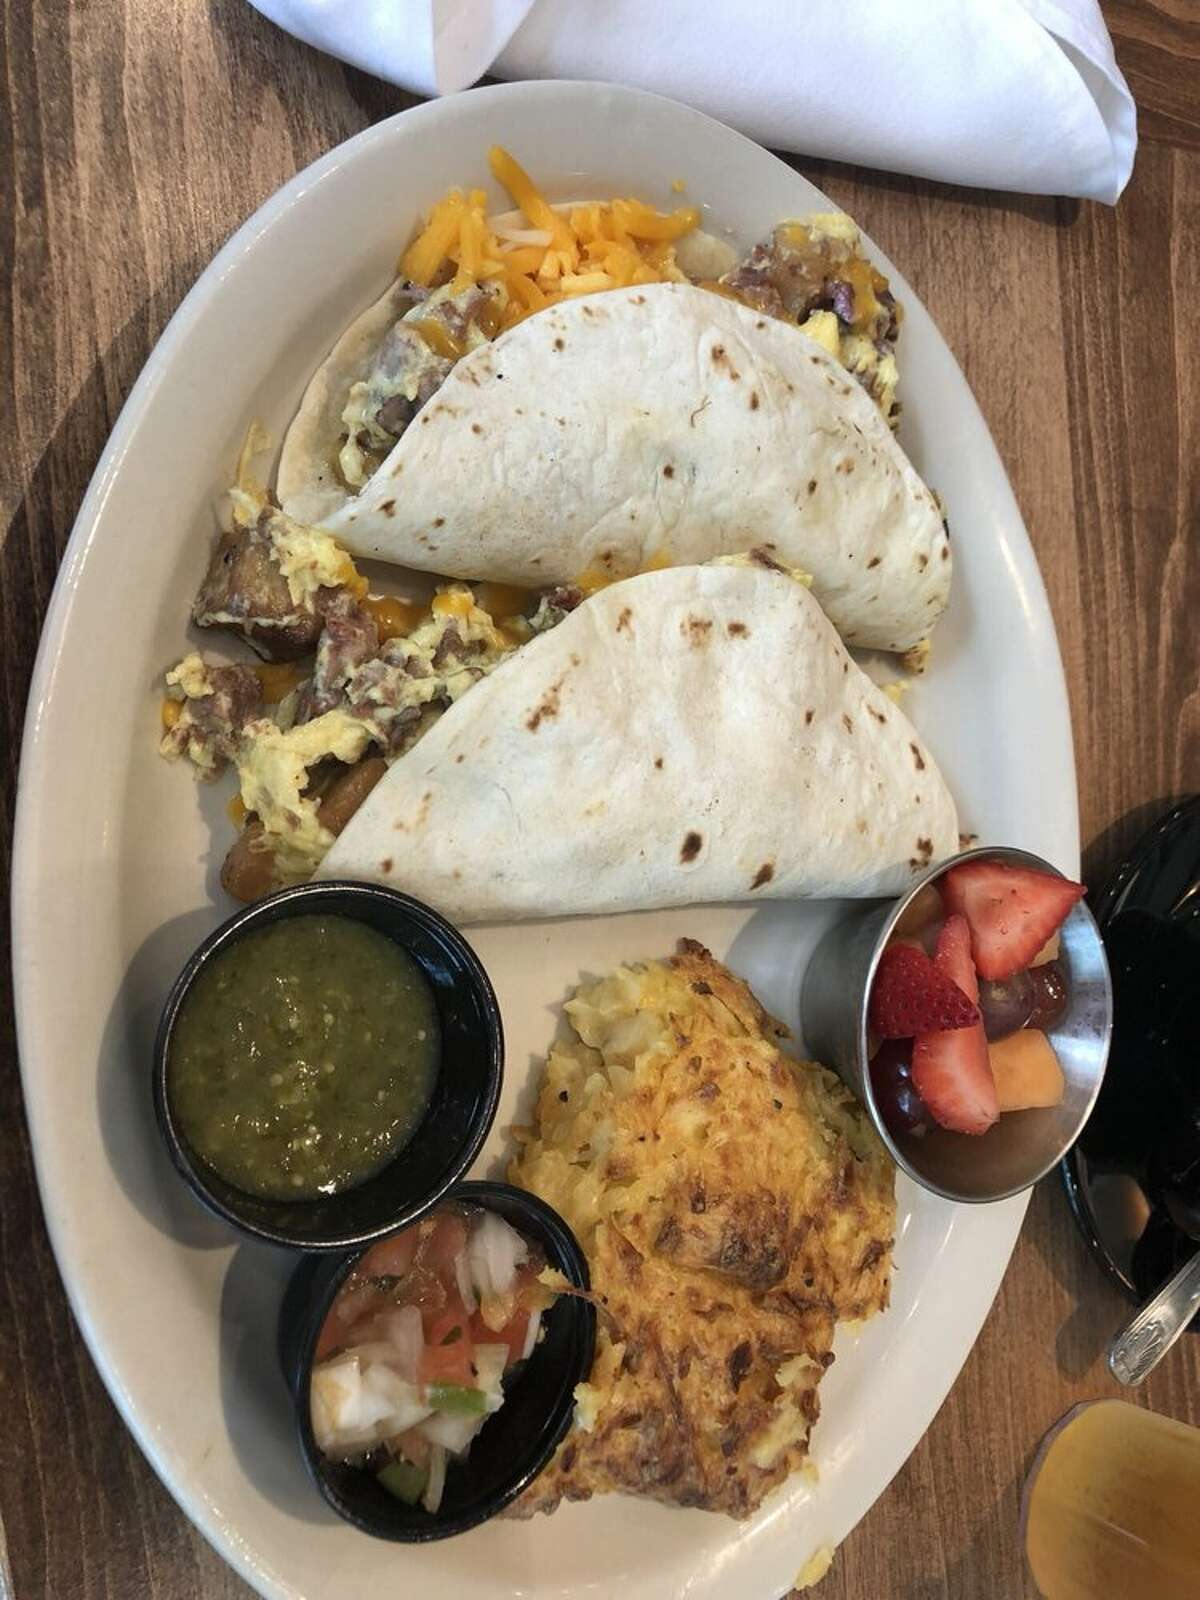 10. The Toasted Yolk Cafe Opened 4 weeks ago 2110 Town Sq Dr Sugar Land, TX Photo:Courtney D./Yelp